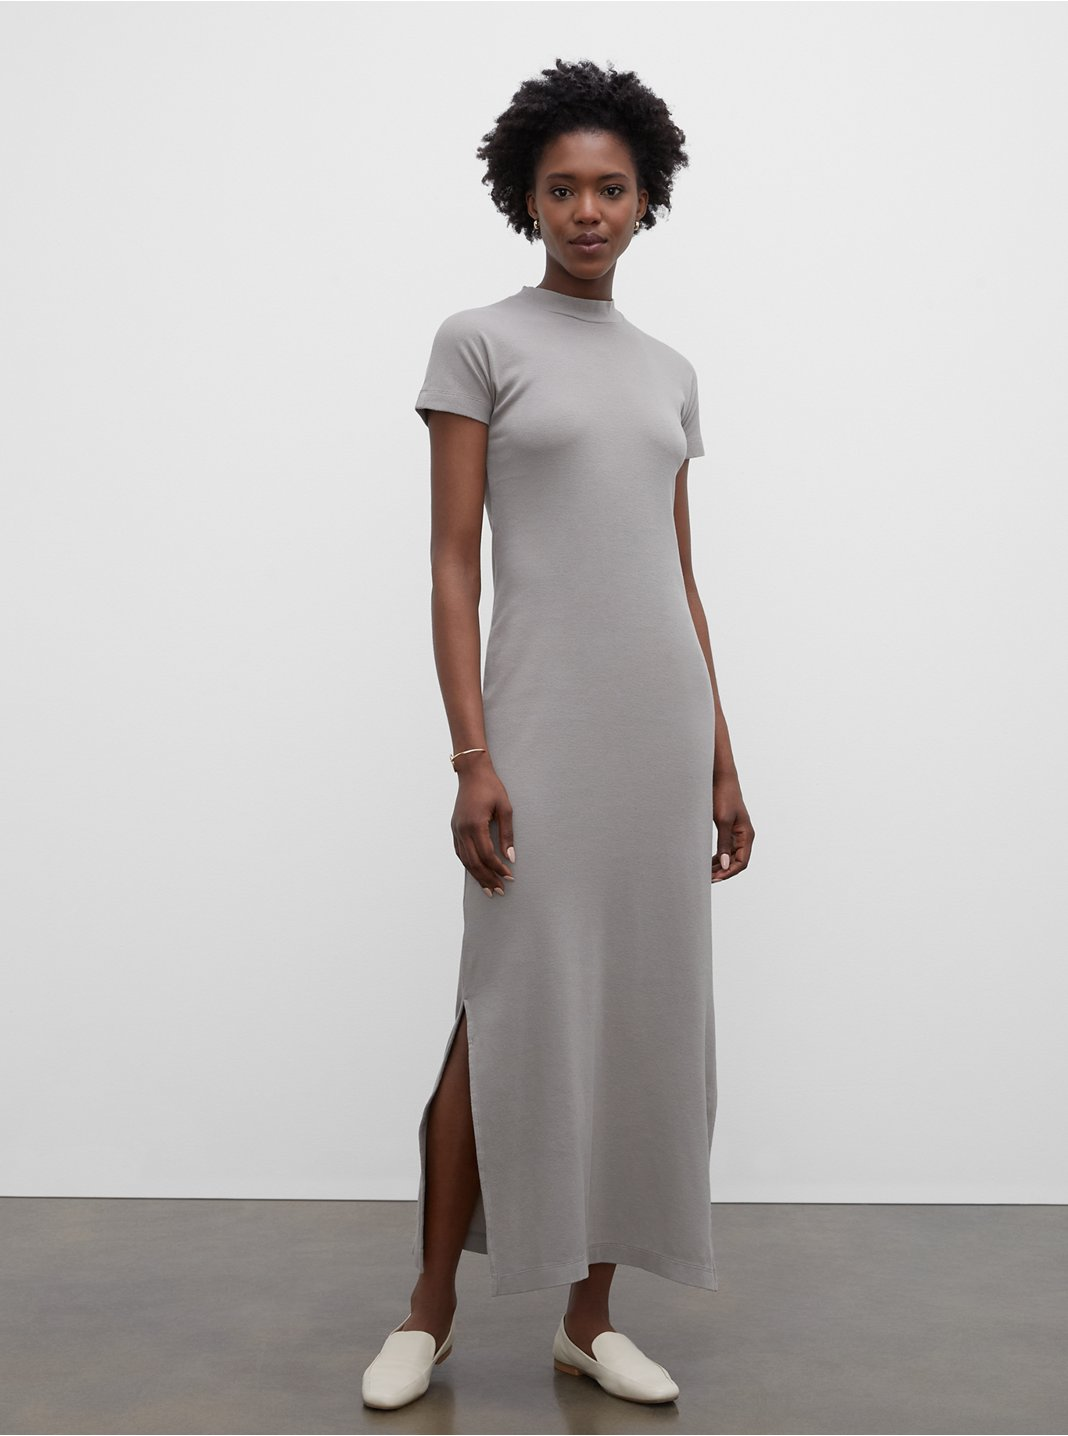 Tea Dyed Mockneck Rib Dress